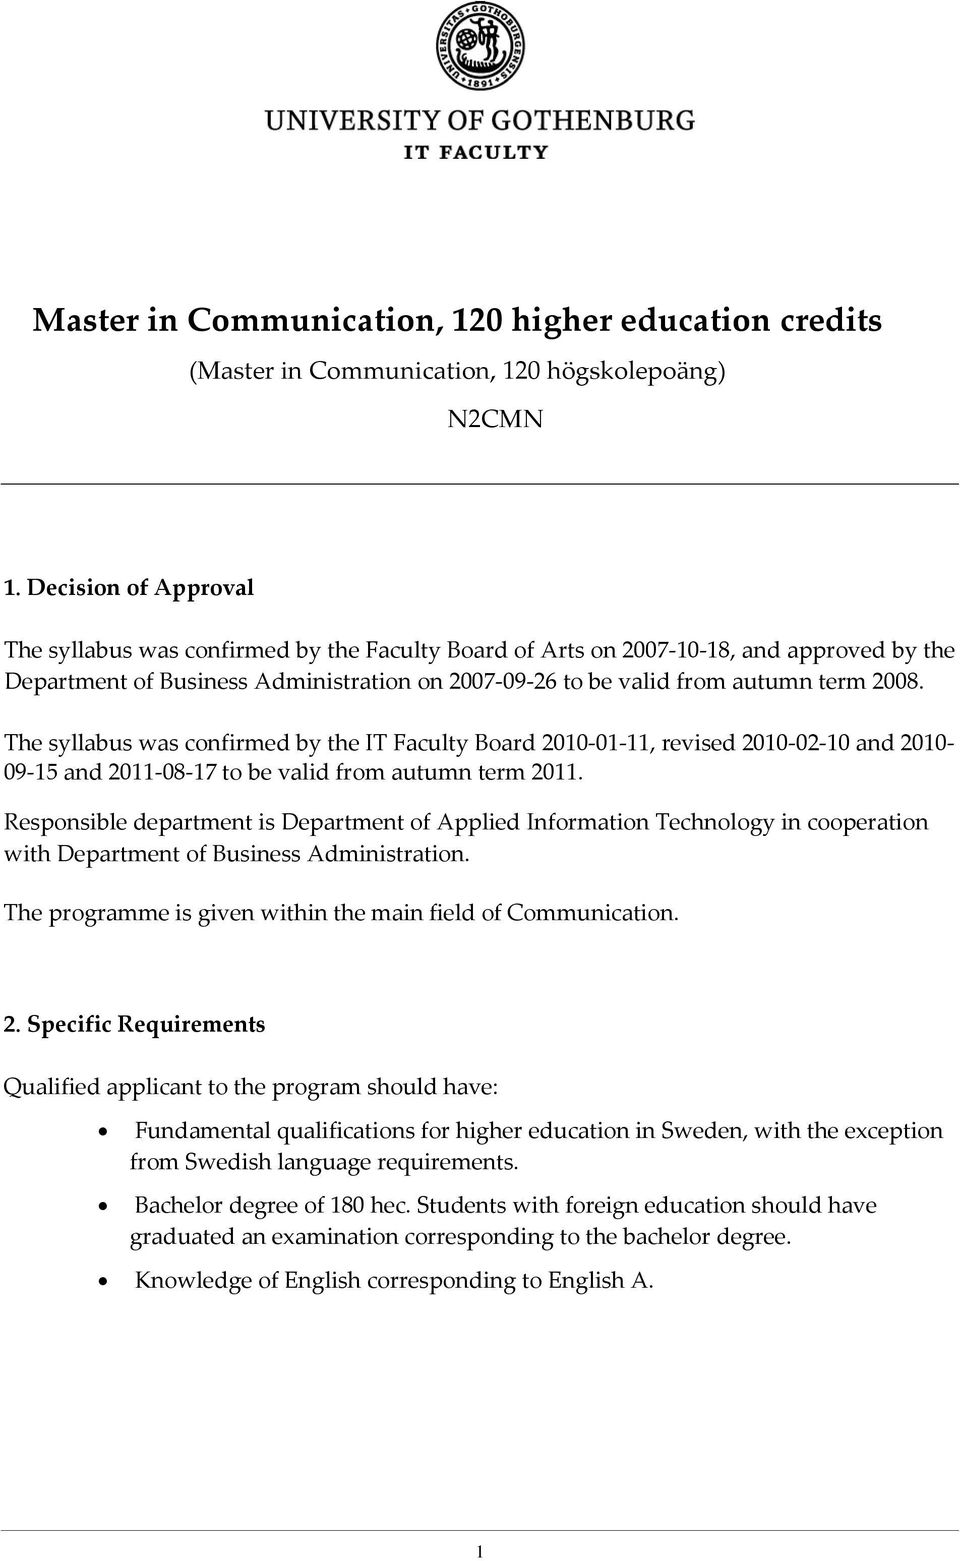 The syllabus was confirmed by the IT Faculty Board 2010-01-11, revised 2010-02-10 and 2010-09-15 and 2011-08-17 to be valid from autumn term 2011.